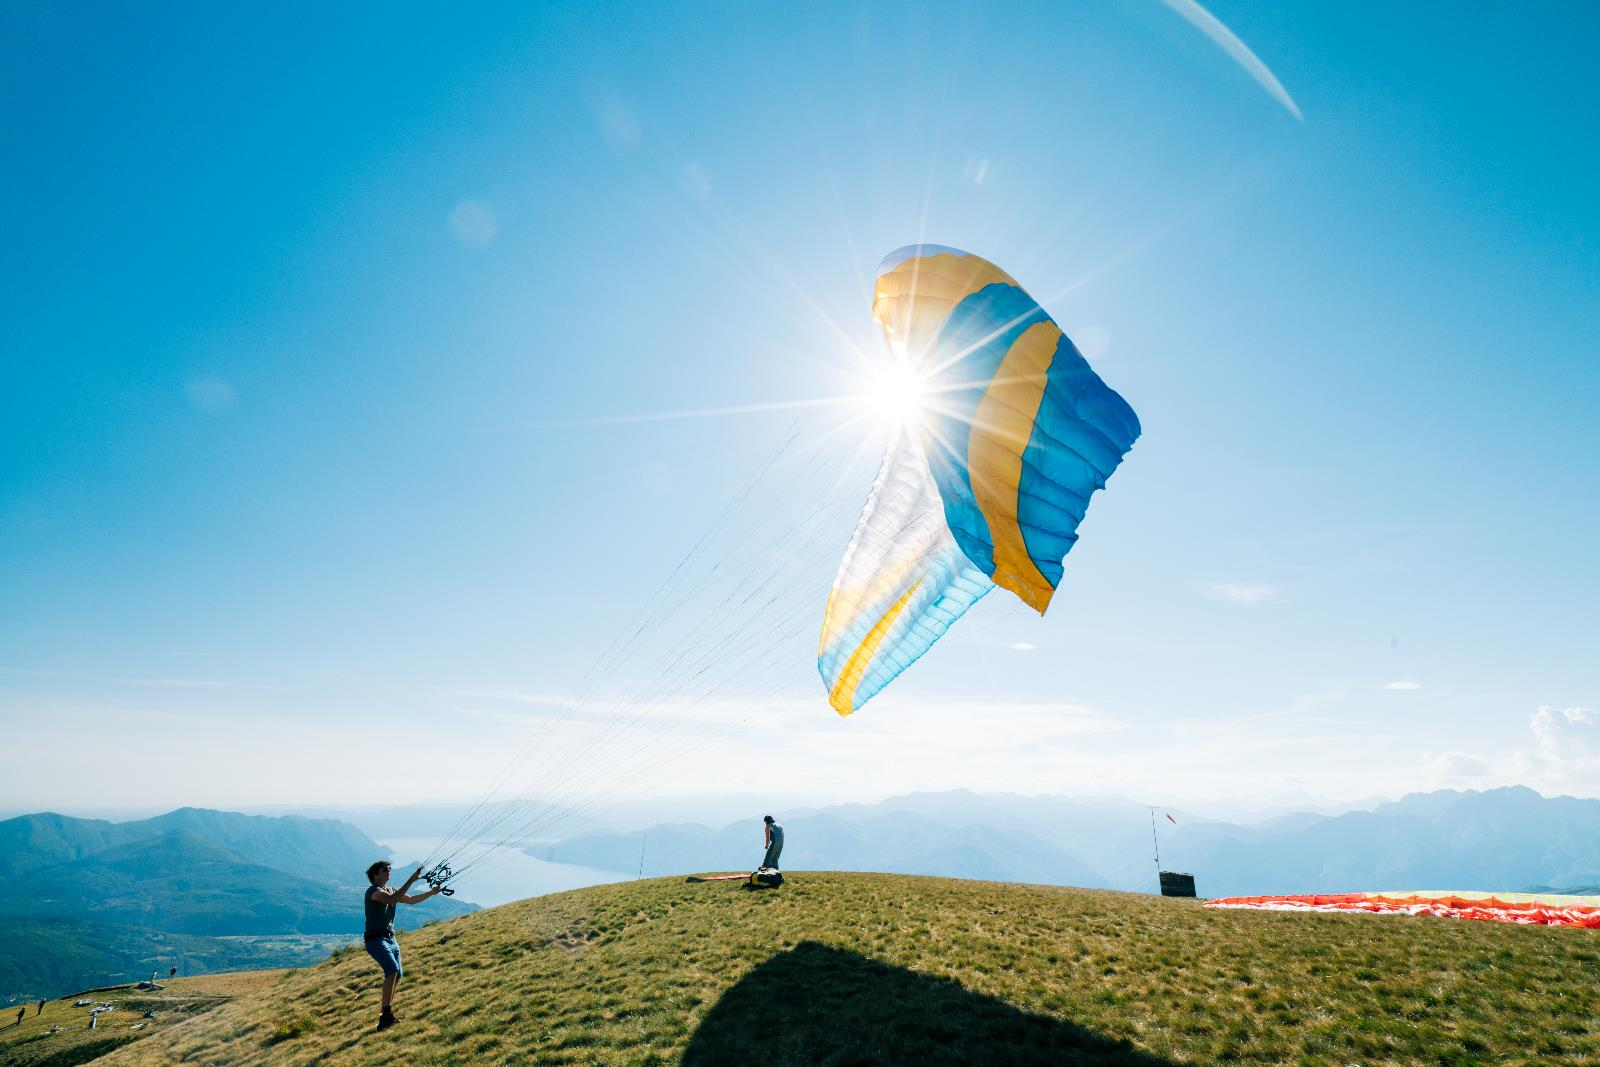 Sport and leisure, Paragliding